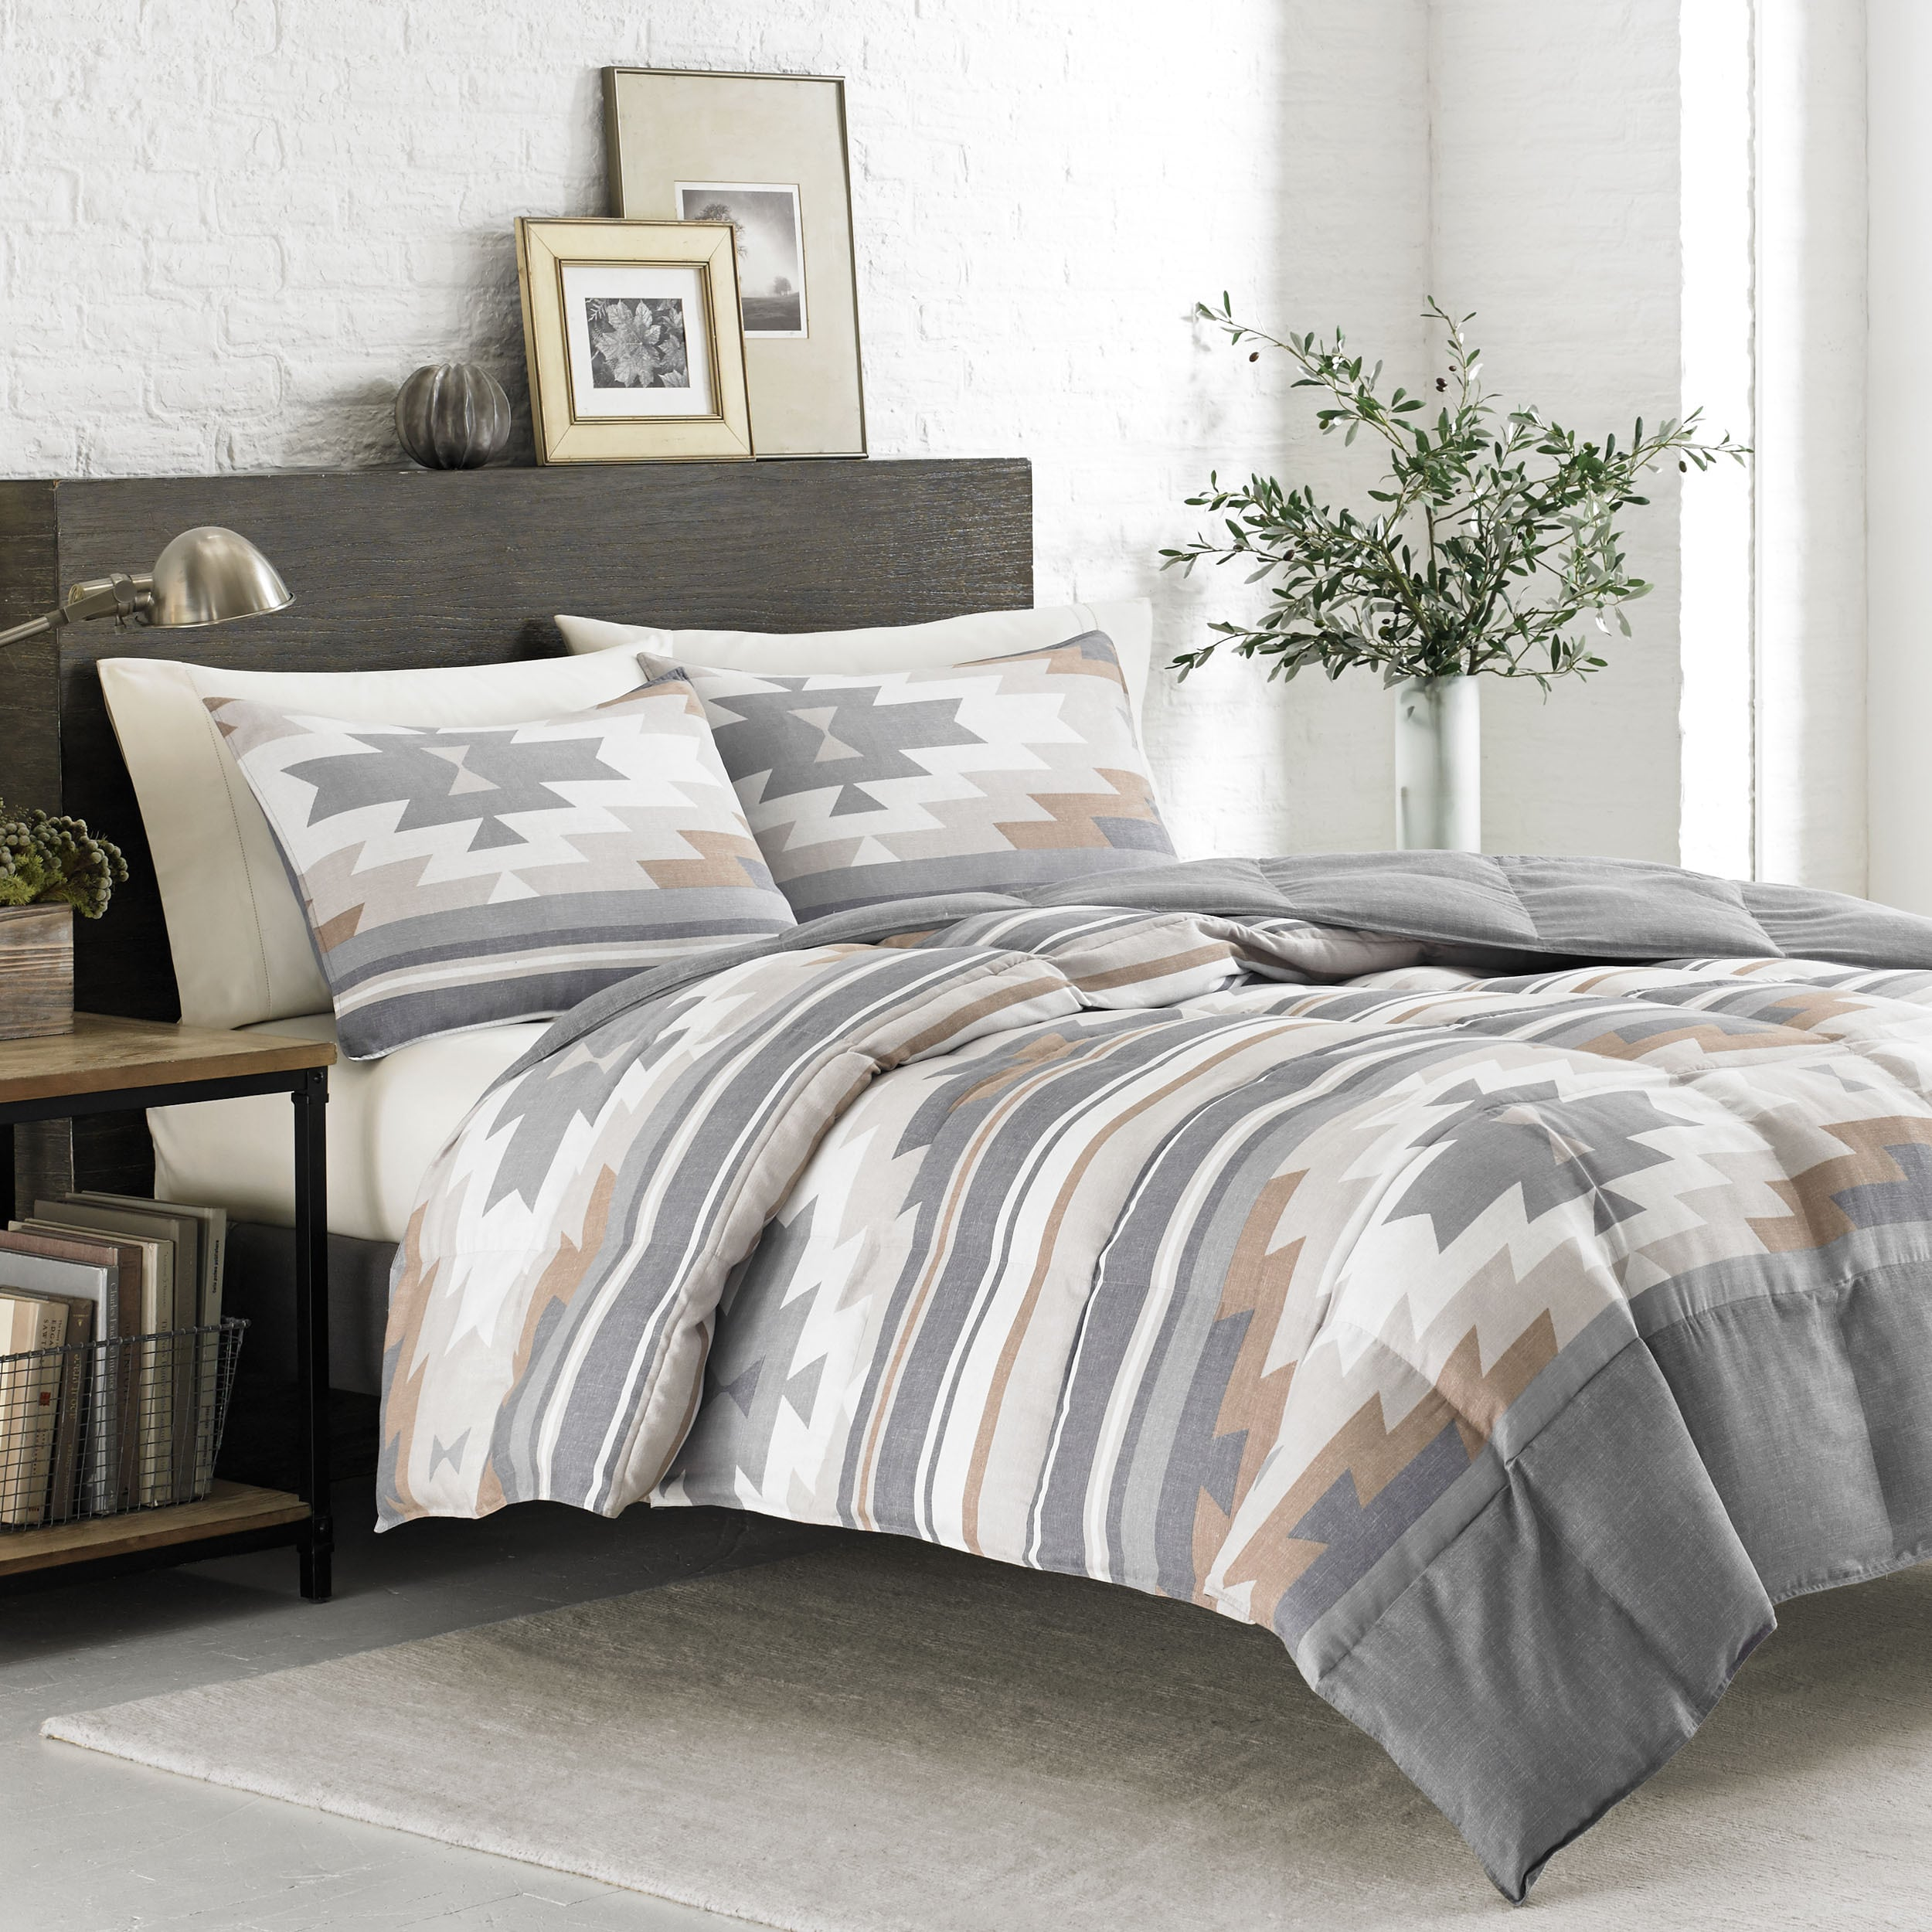 well bean as with conjunction duvet comforter charcoal blankets king bedding scarf cover eddie flannel plaid bed ll bassinet blanket marled in target covers twin bauer set also for